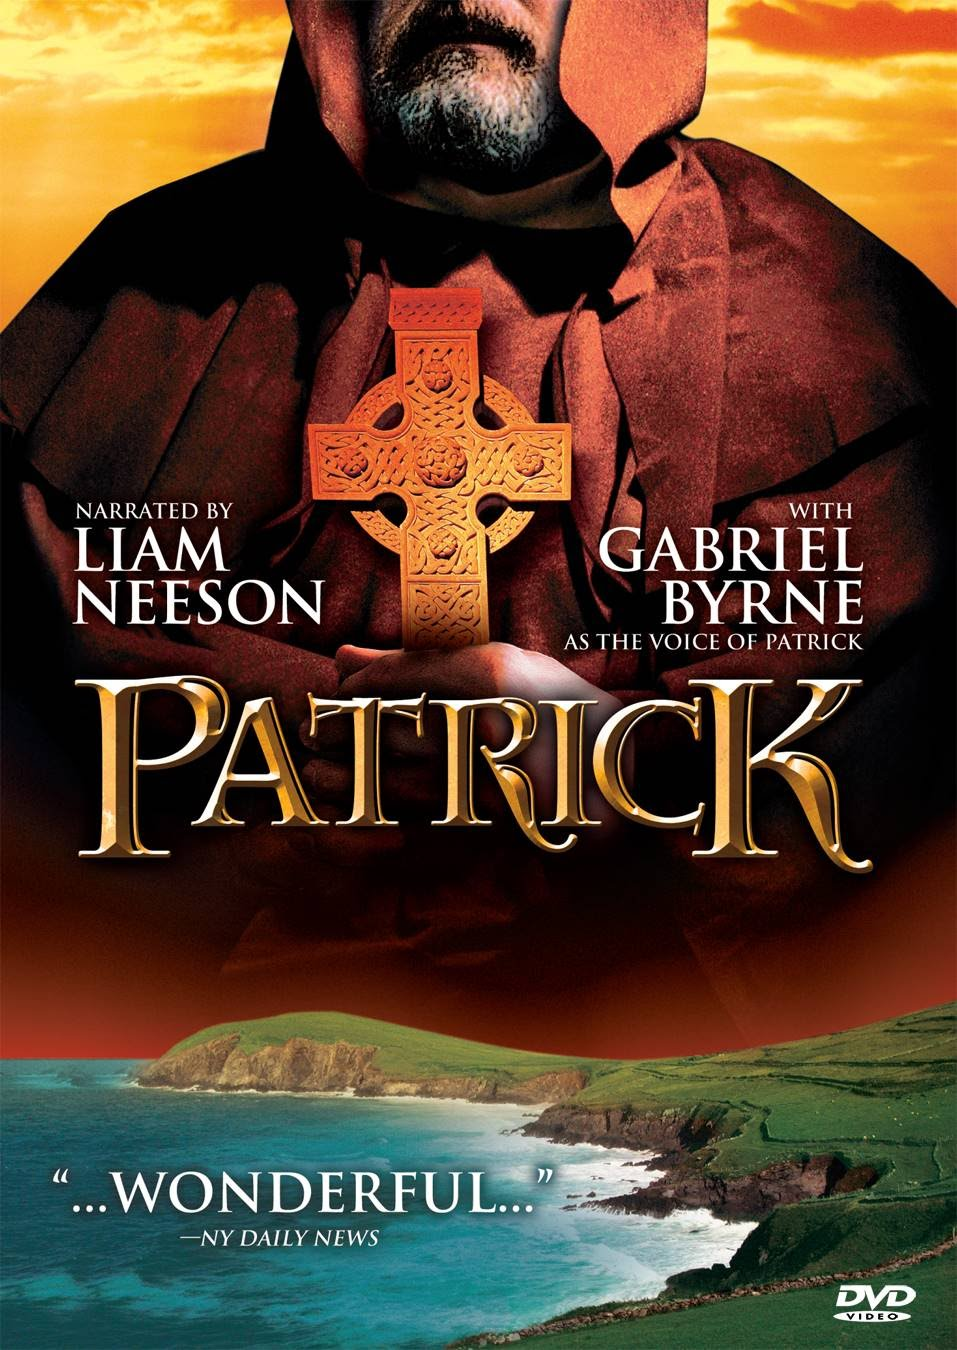 Patrick 10 Movie Recommendations For St. Patrick's Day